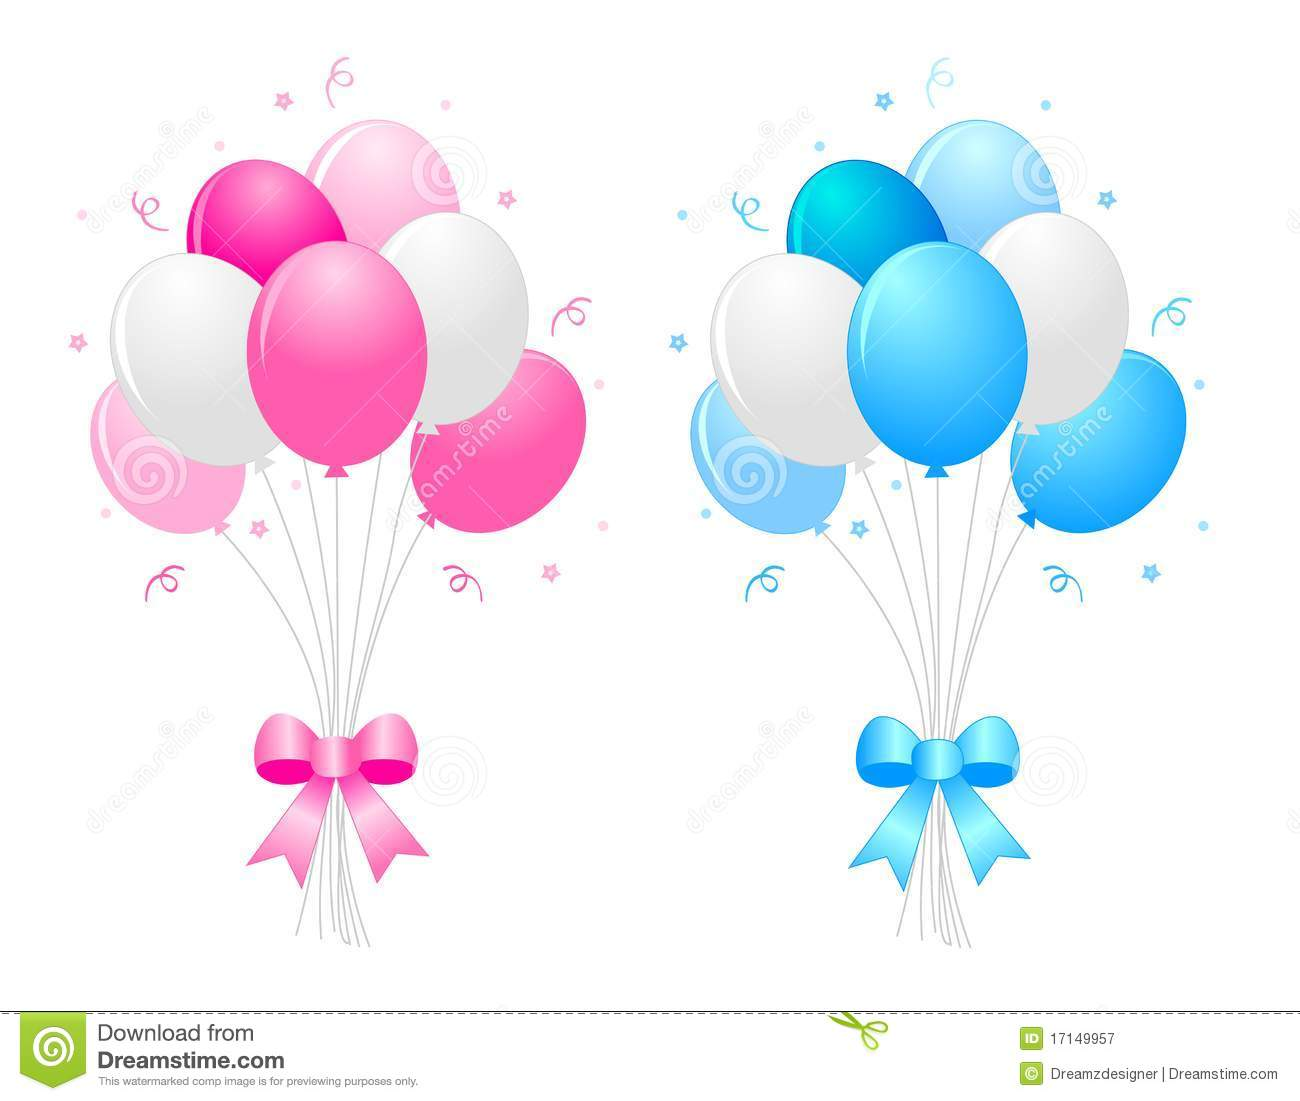 hight resolution of illustration of a bunch of multi colored 9pink blue and white balloons with curly ribbons clipart isolated on white background